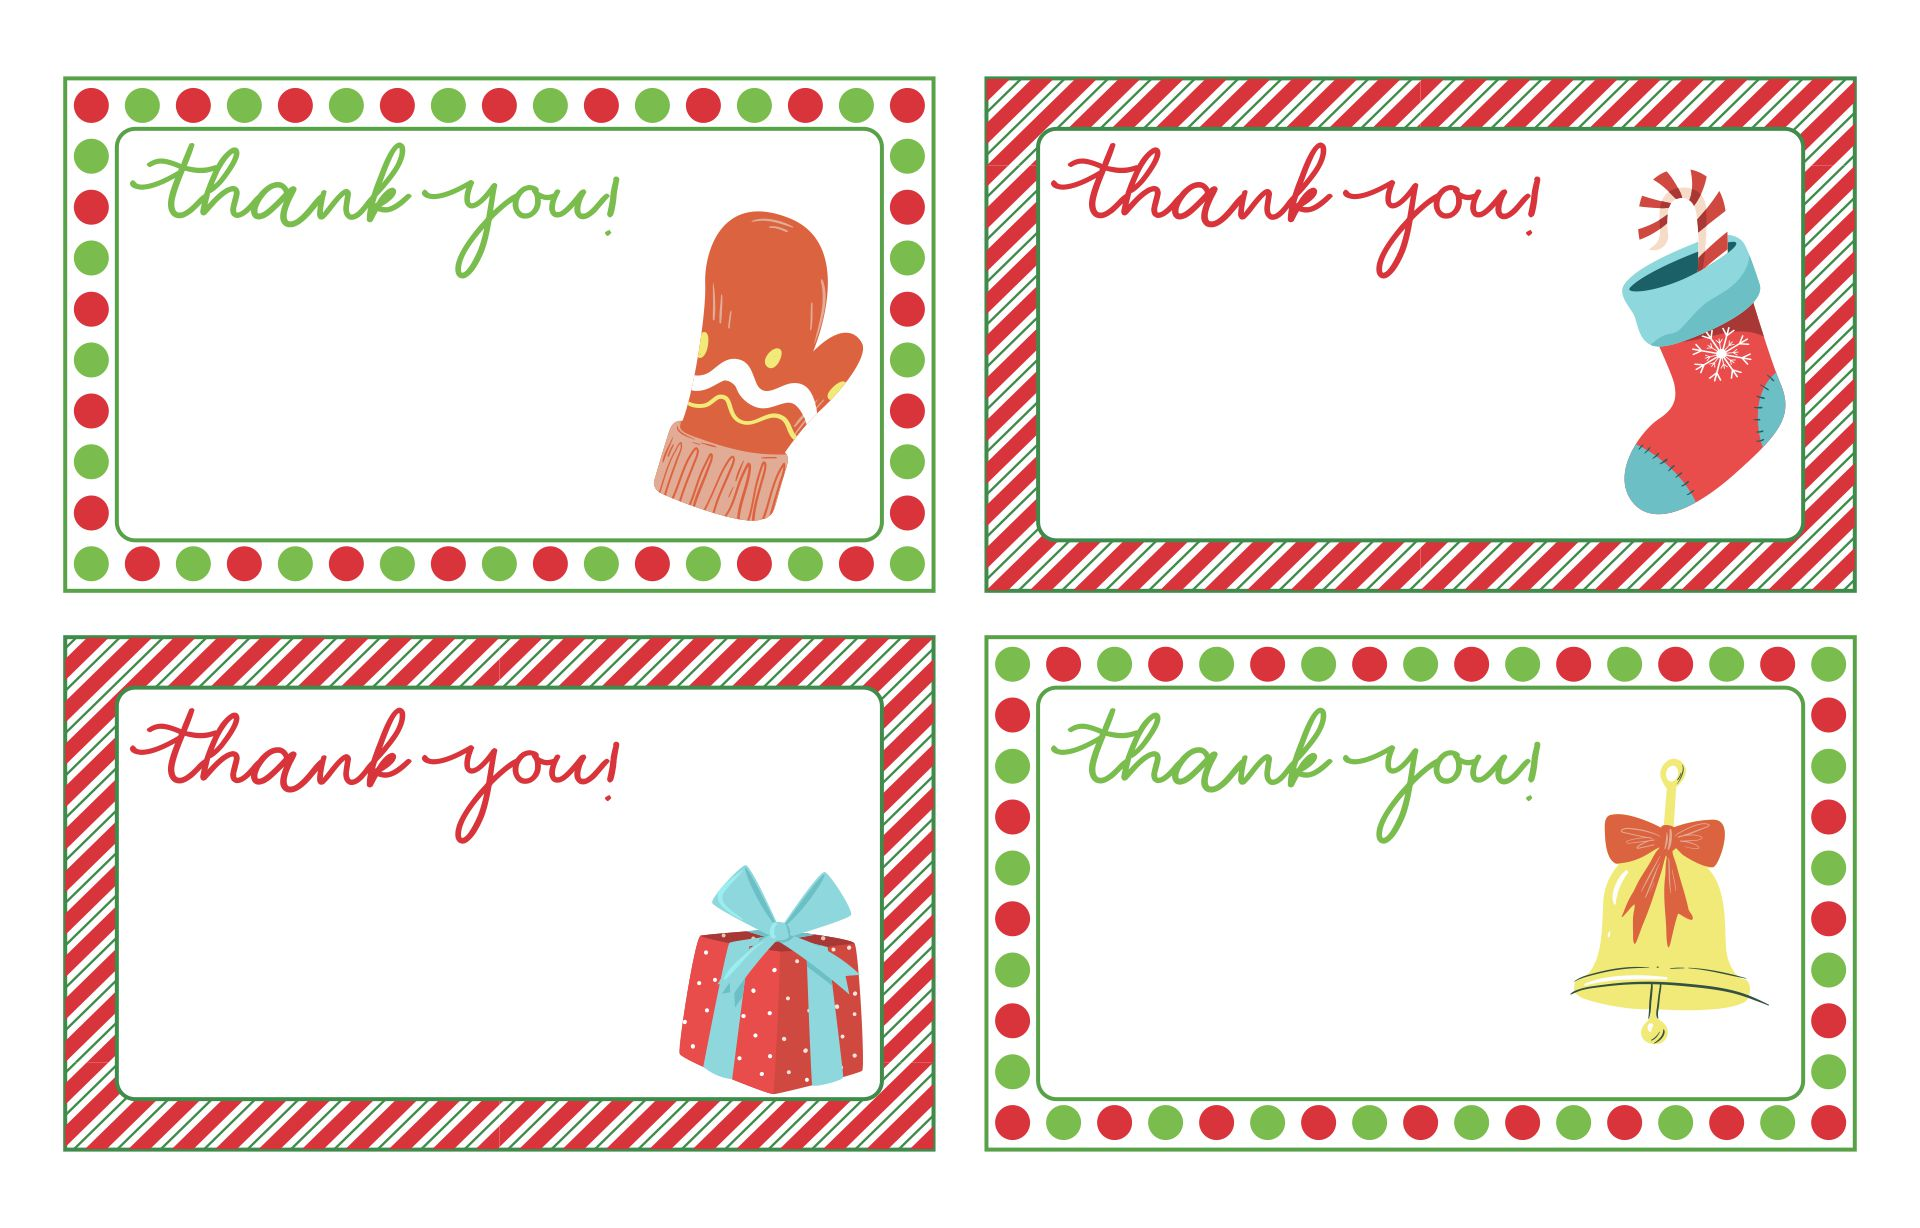 7 Images of Christmas Thank You Cards Free Printables